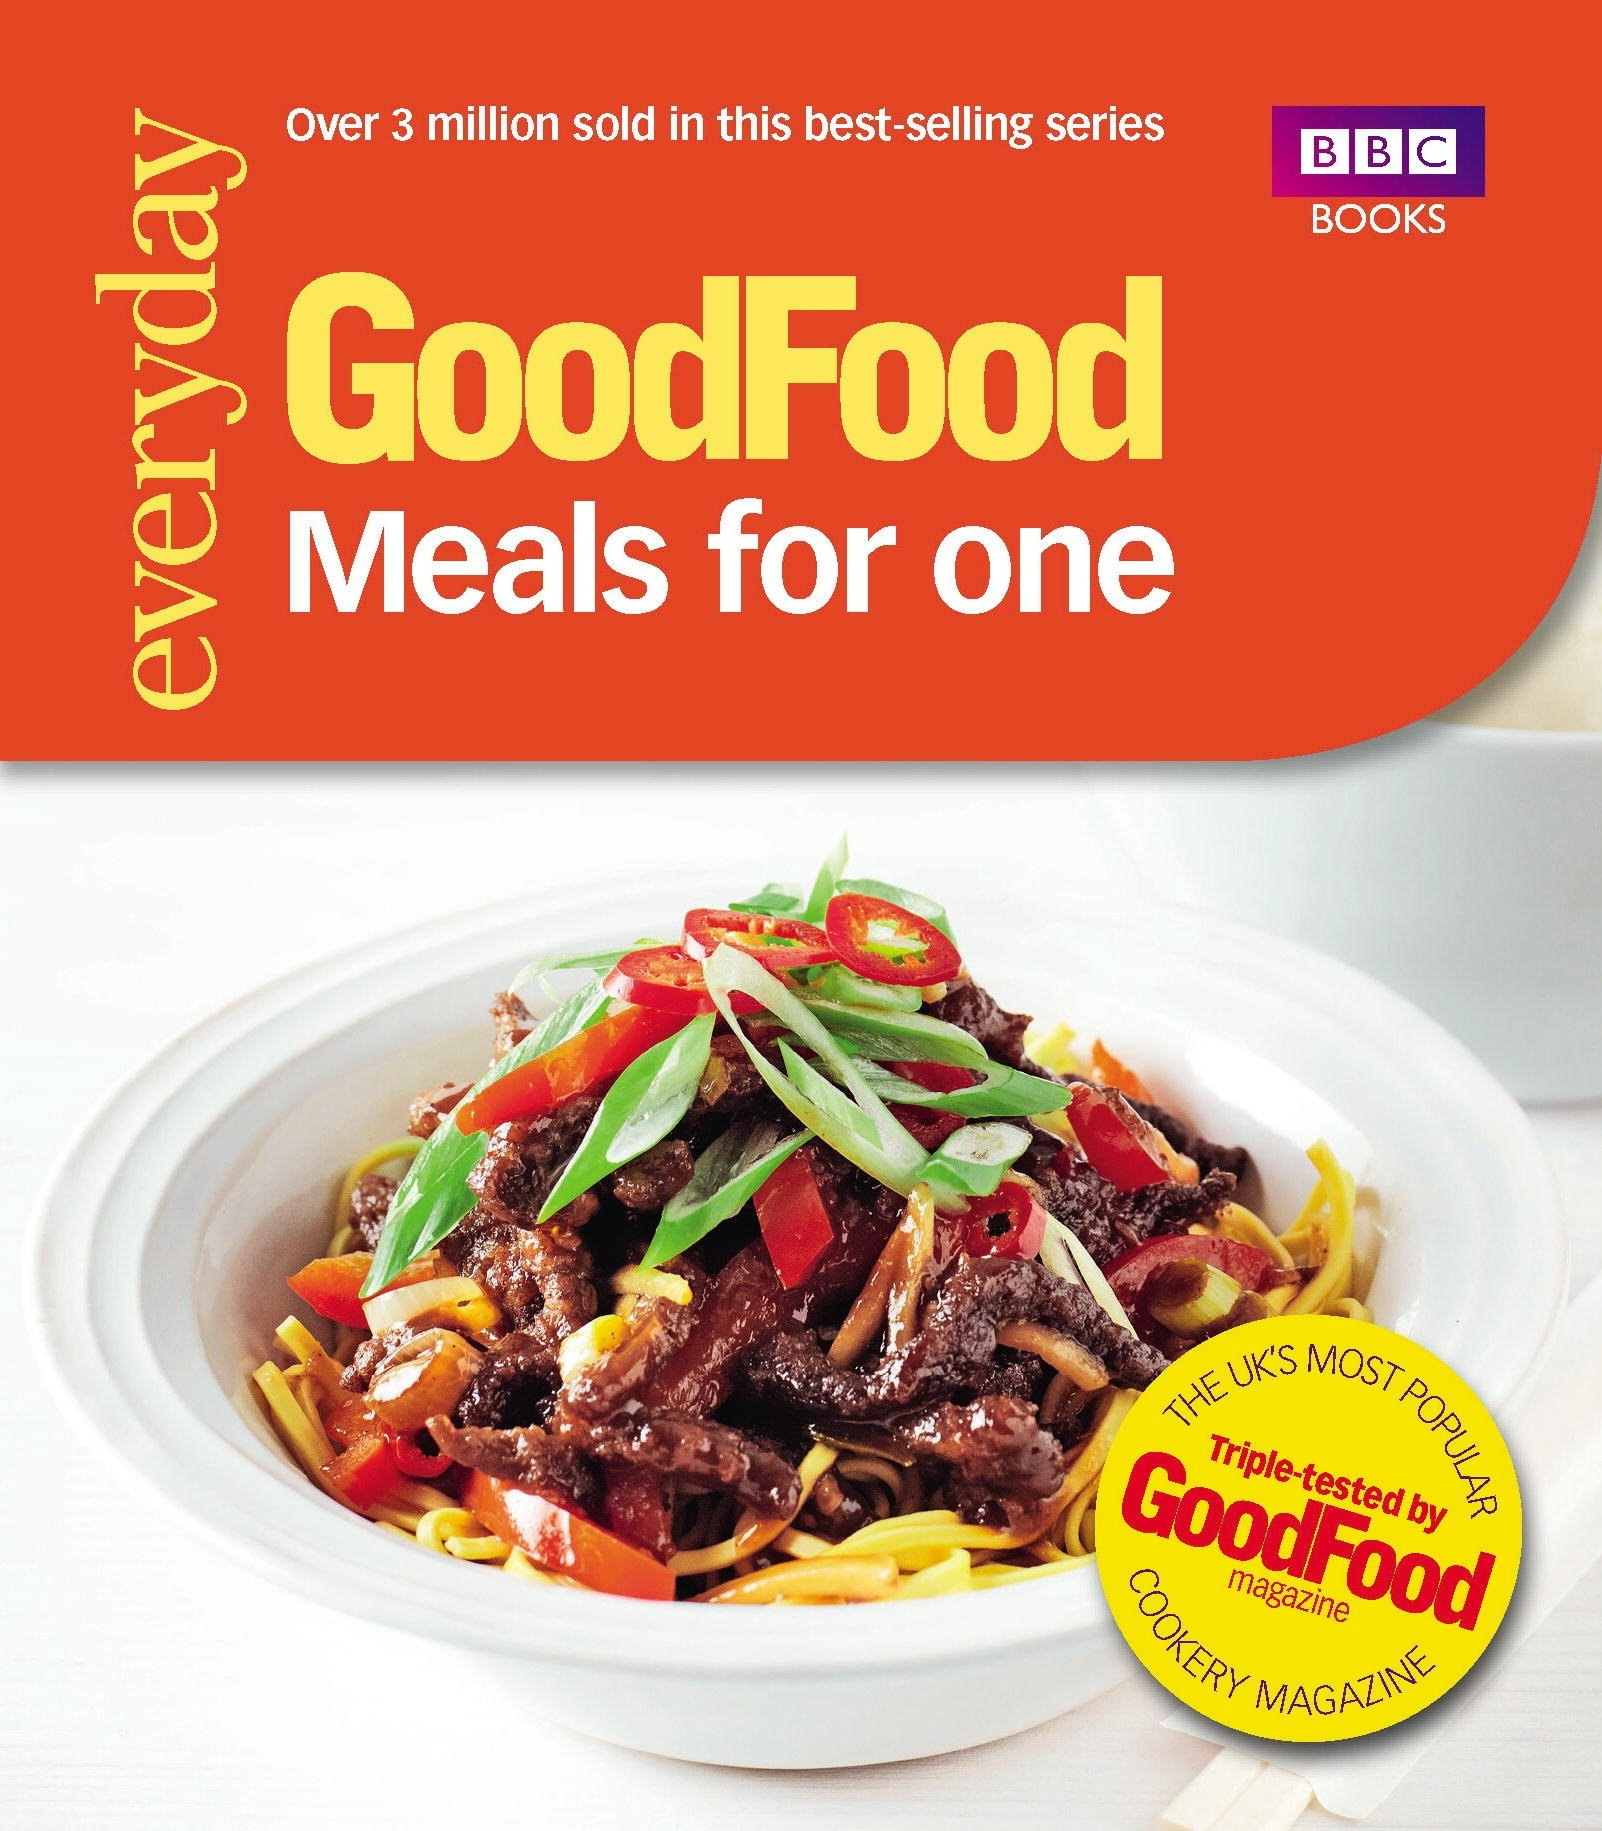 Good food meals for one triple tested recipes everyday goodfood good food meals for one triple tested recipes everyday goodfood amazon cassie best 9781849906715 books forumfinder Choice Image